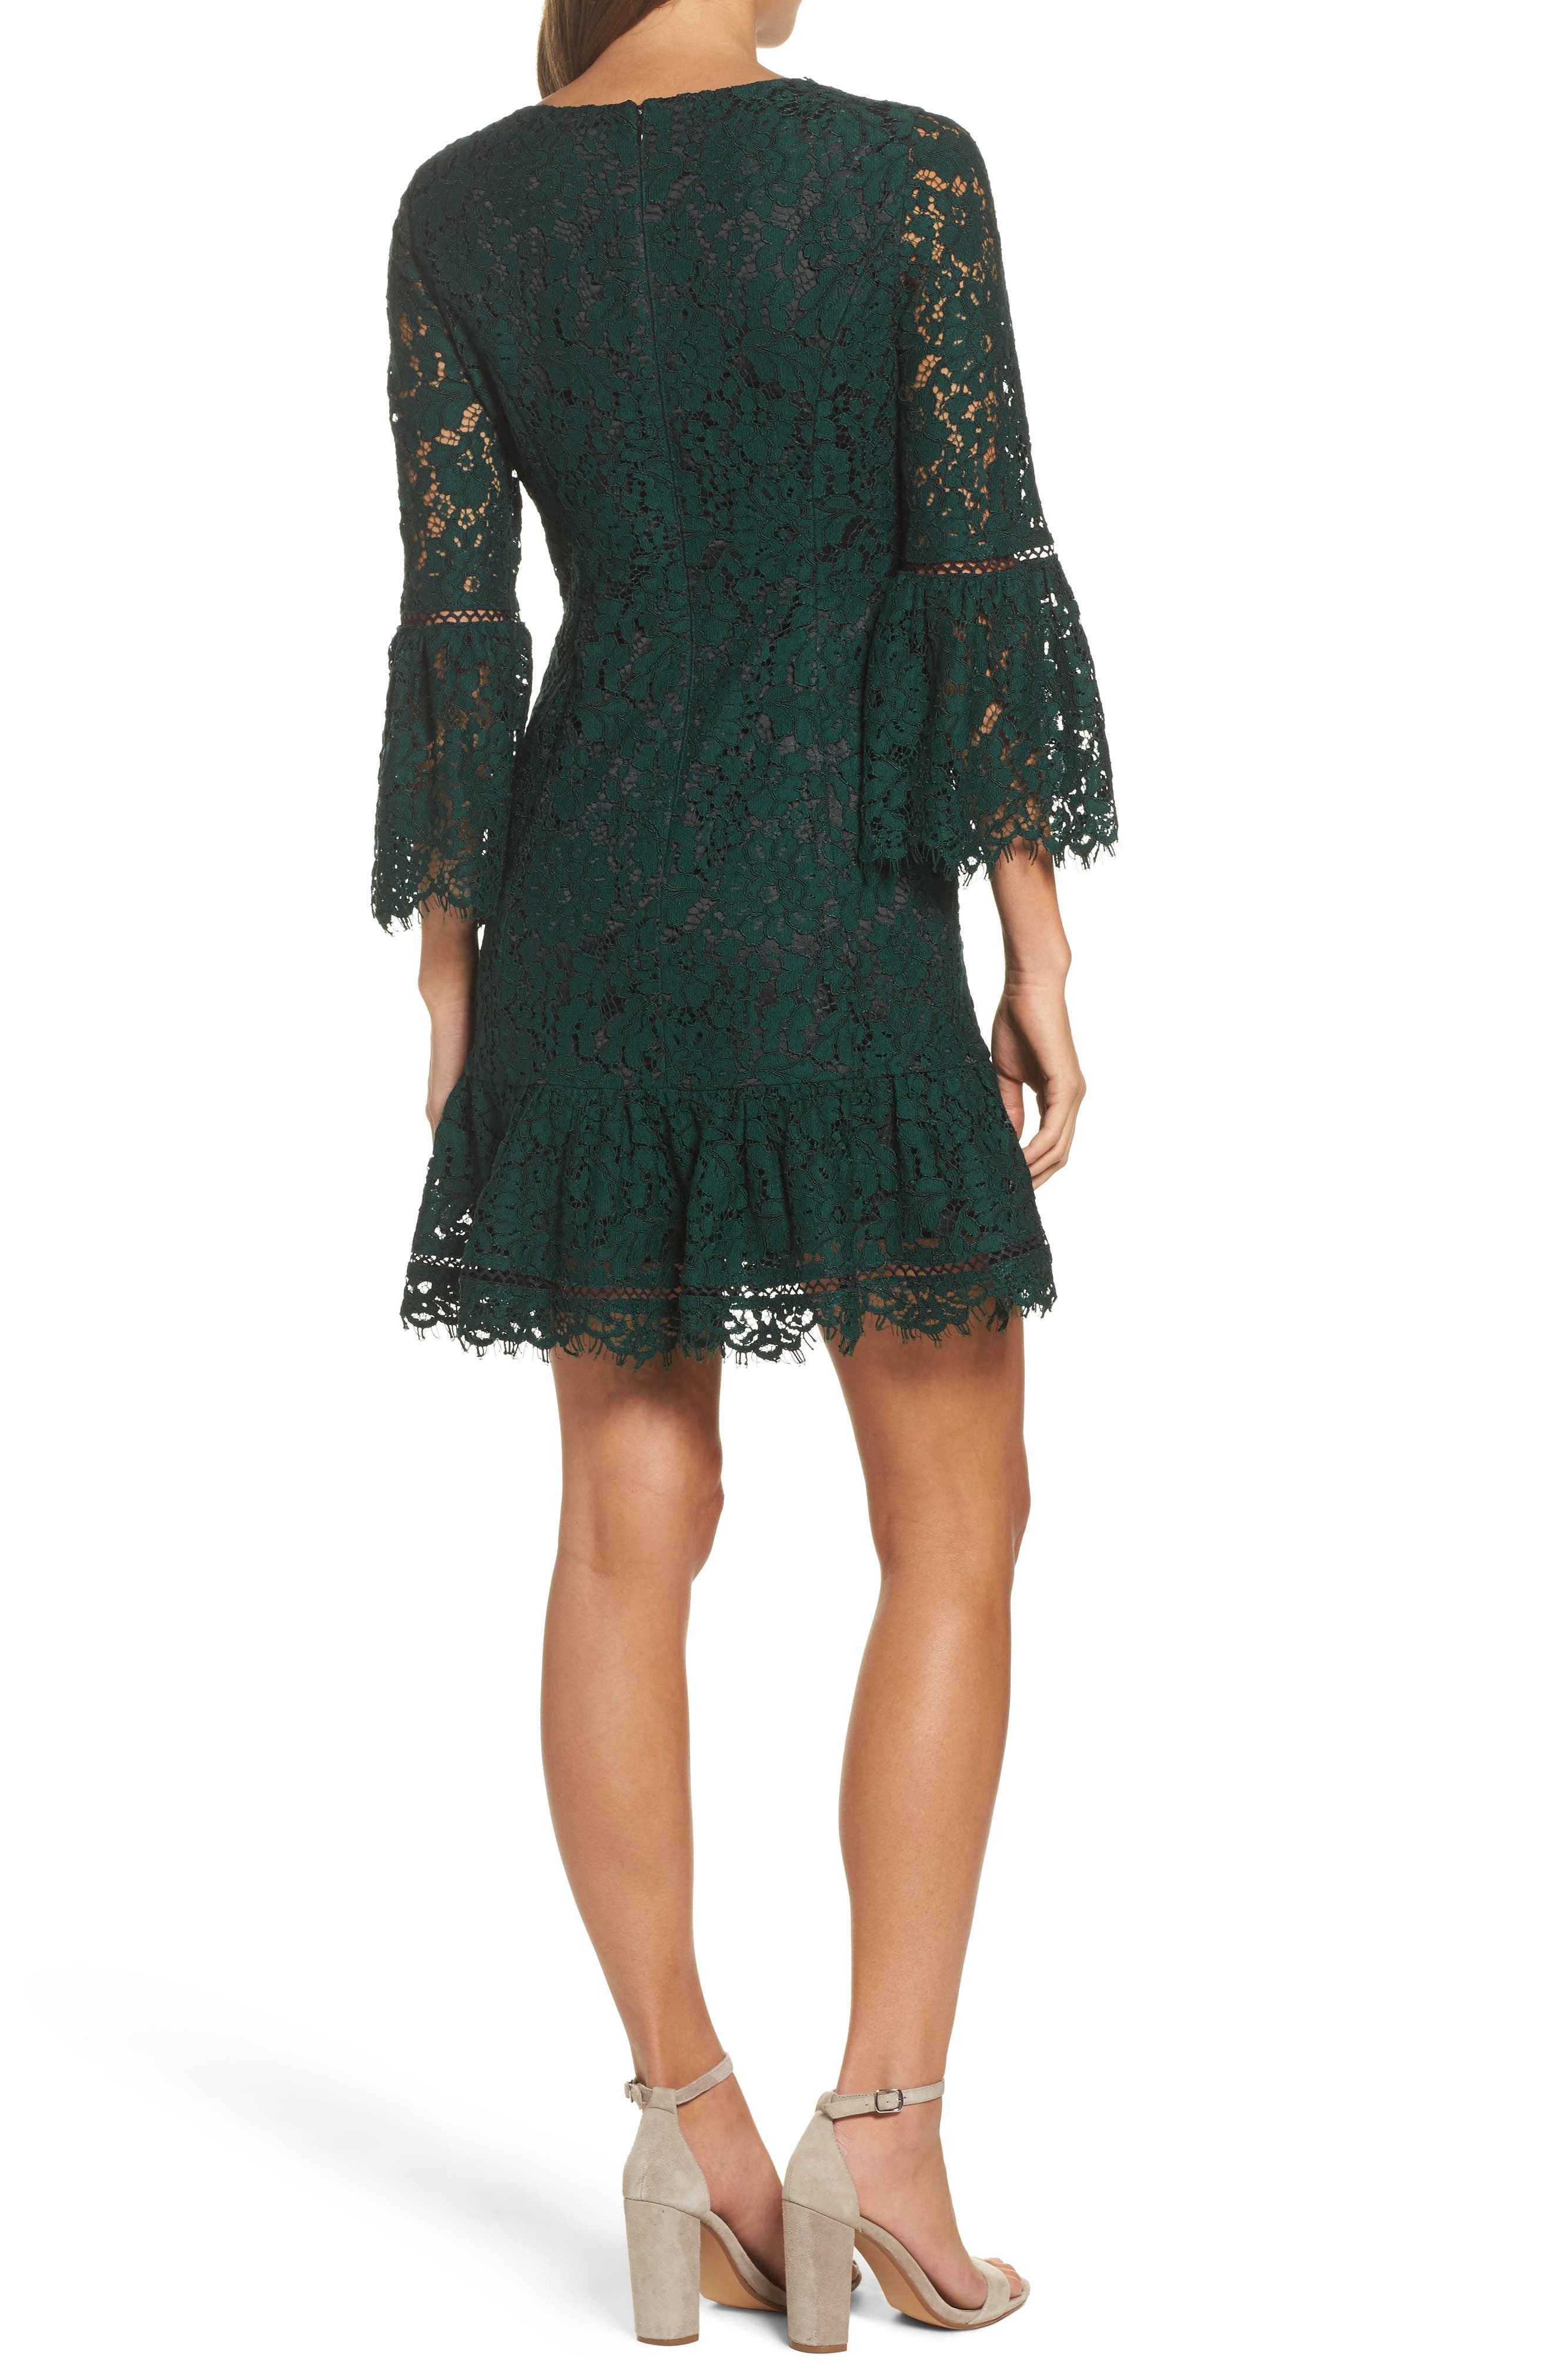 Bell Sleeve Lace Dress,                             Alternate thumbnail 2, color,                             Green/ Black